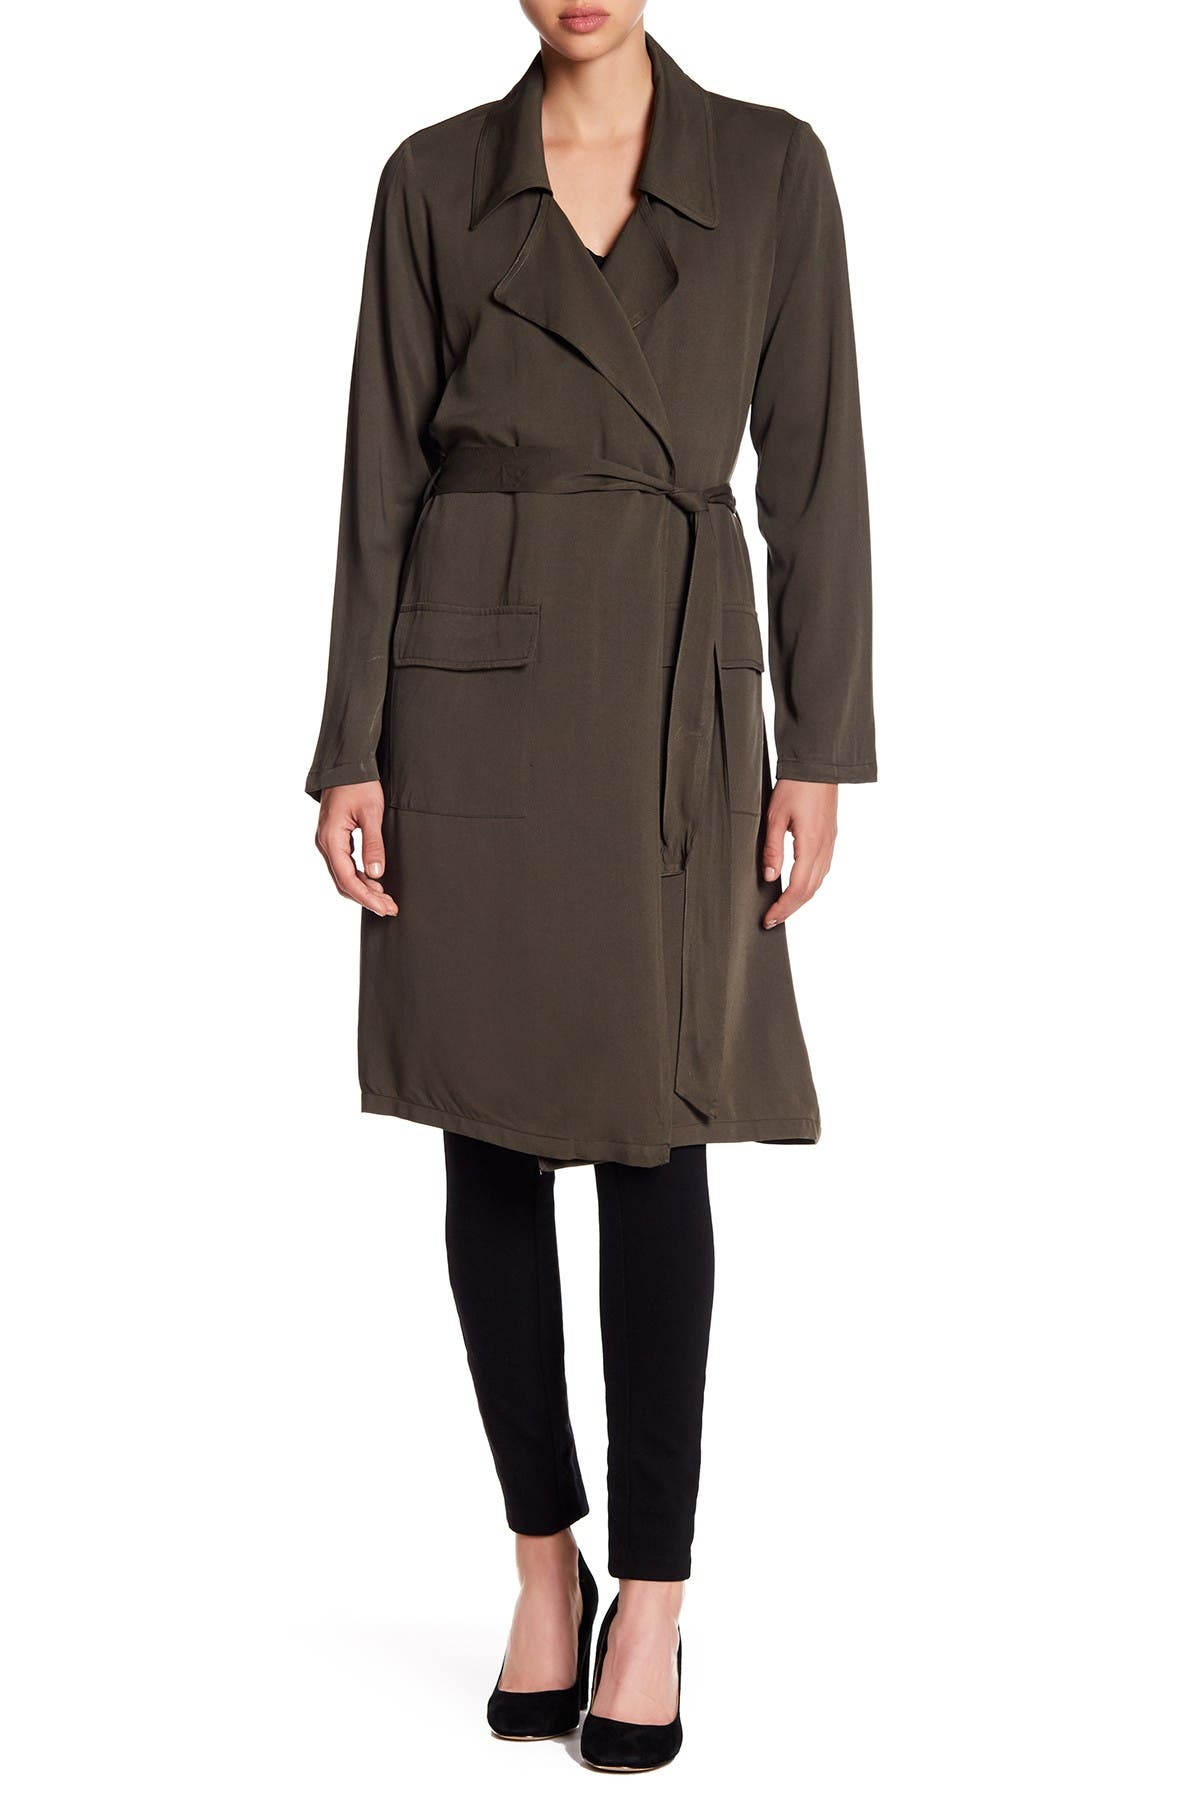 Image of DR2 by Daniel Rainn Draped Trench Coat Duster